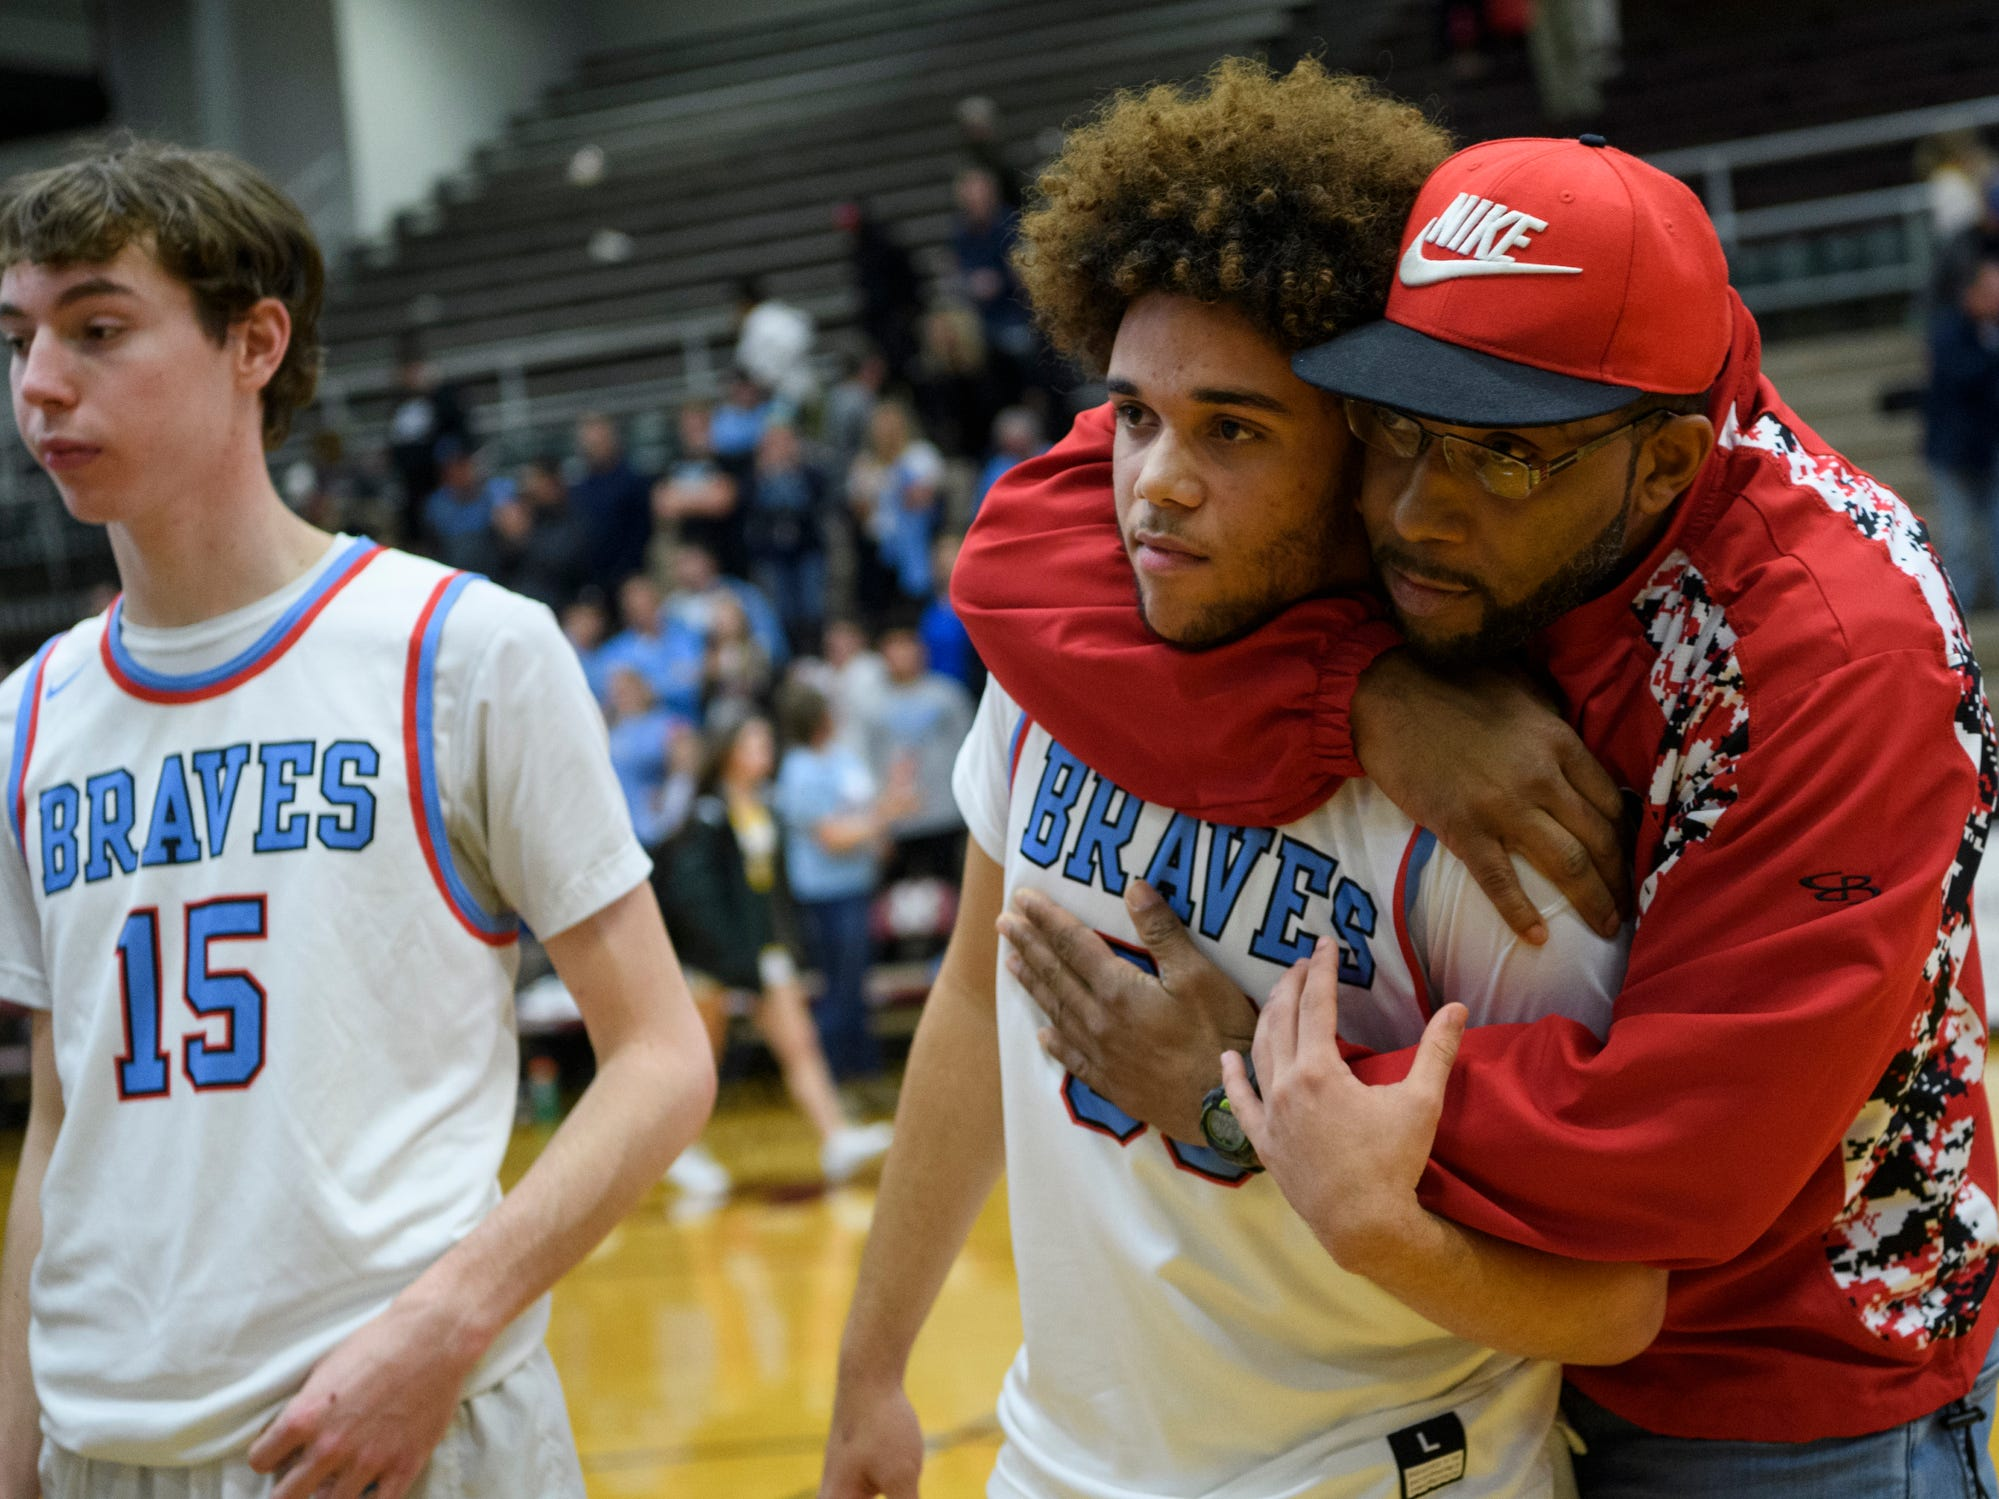 Union County's Dreyton Davis (30) receives a hug as fans sing and cheer for them after a tough loss to the Caldwell County Tigers in the Boys Second Region tournament at Madisonville-North Hopkins High School in Madisonville, Ky., Monday, Feb. 25, 2019. The Tigers defeated the Braves 67-64 to advance to Friday's second region semifinal against University Heights Academy.